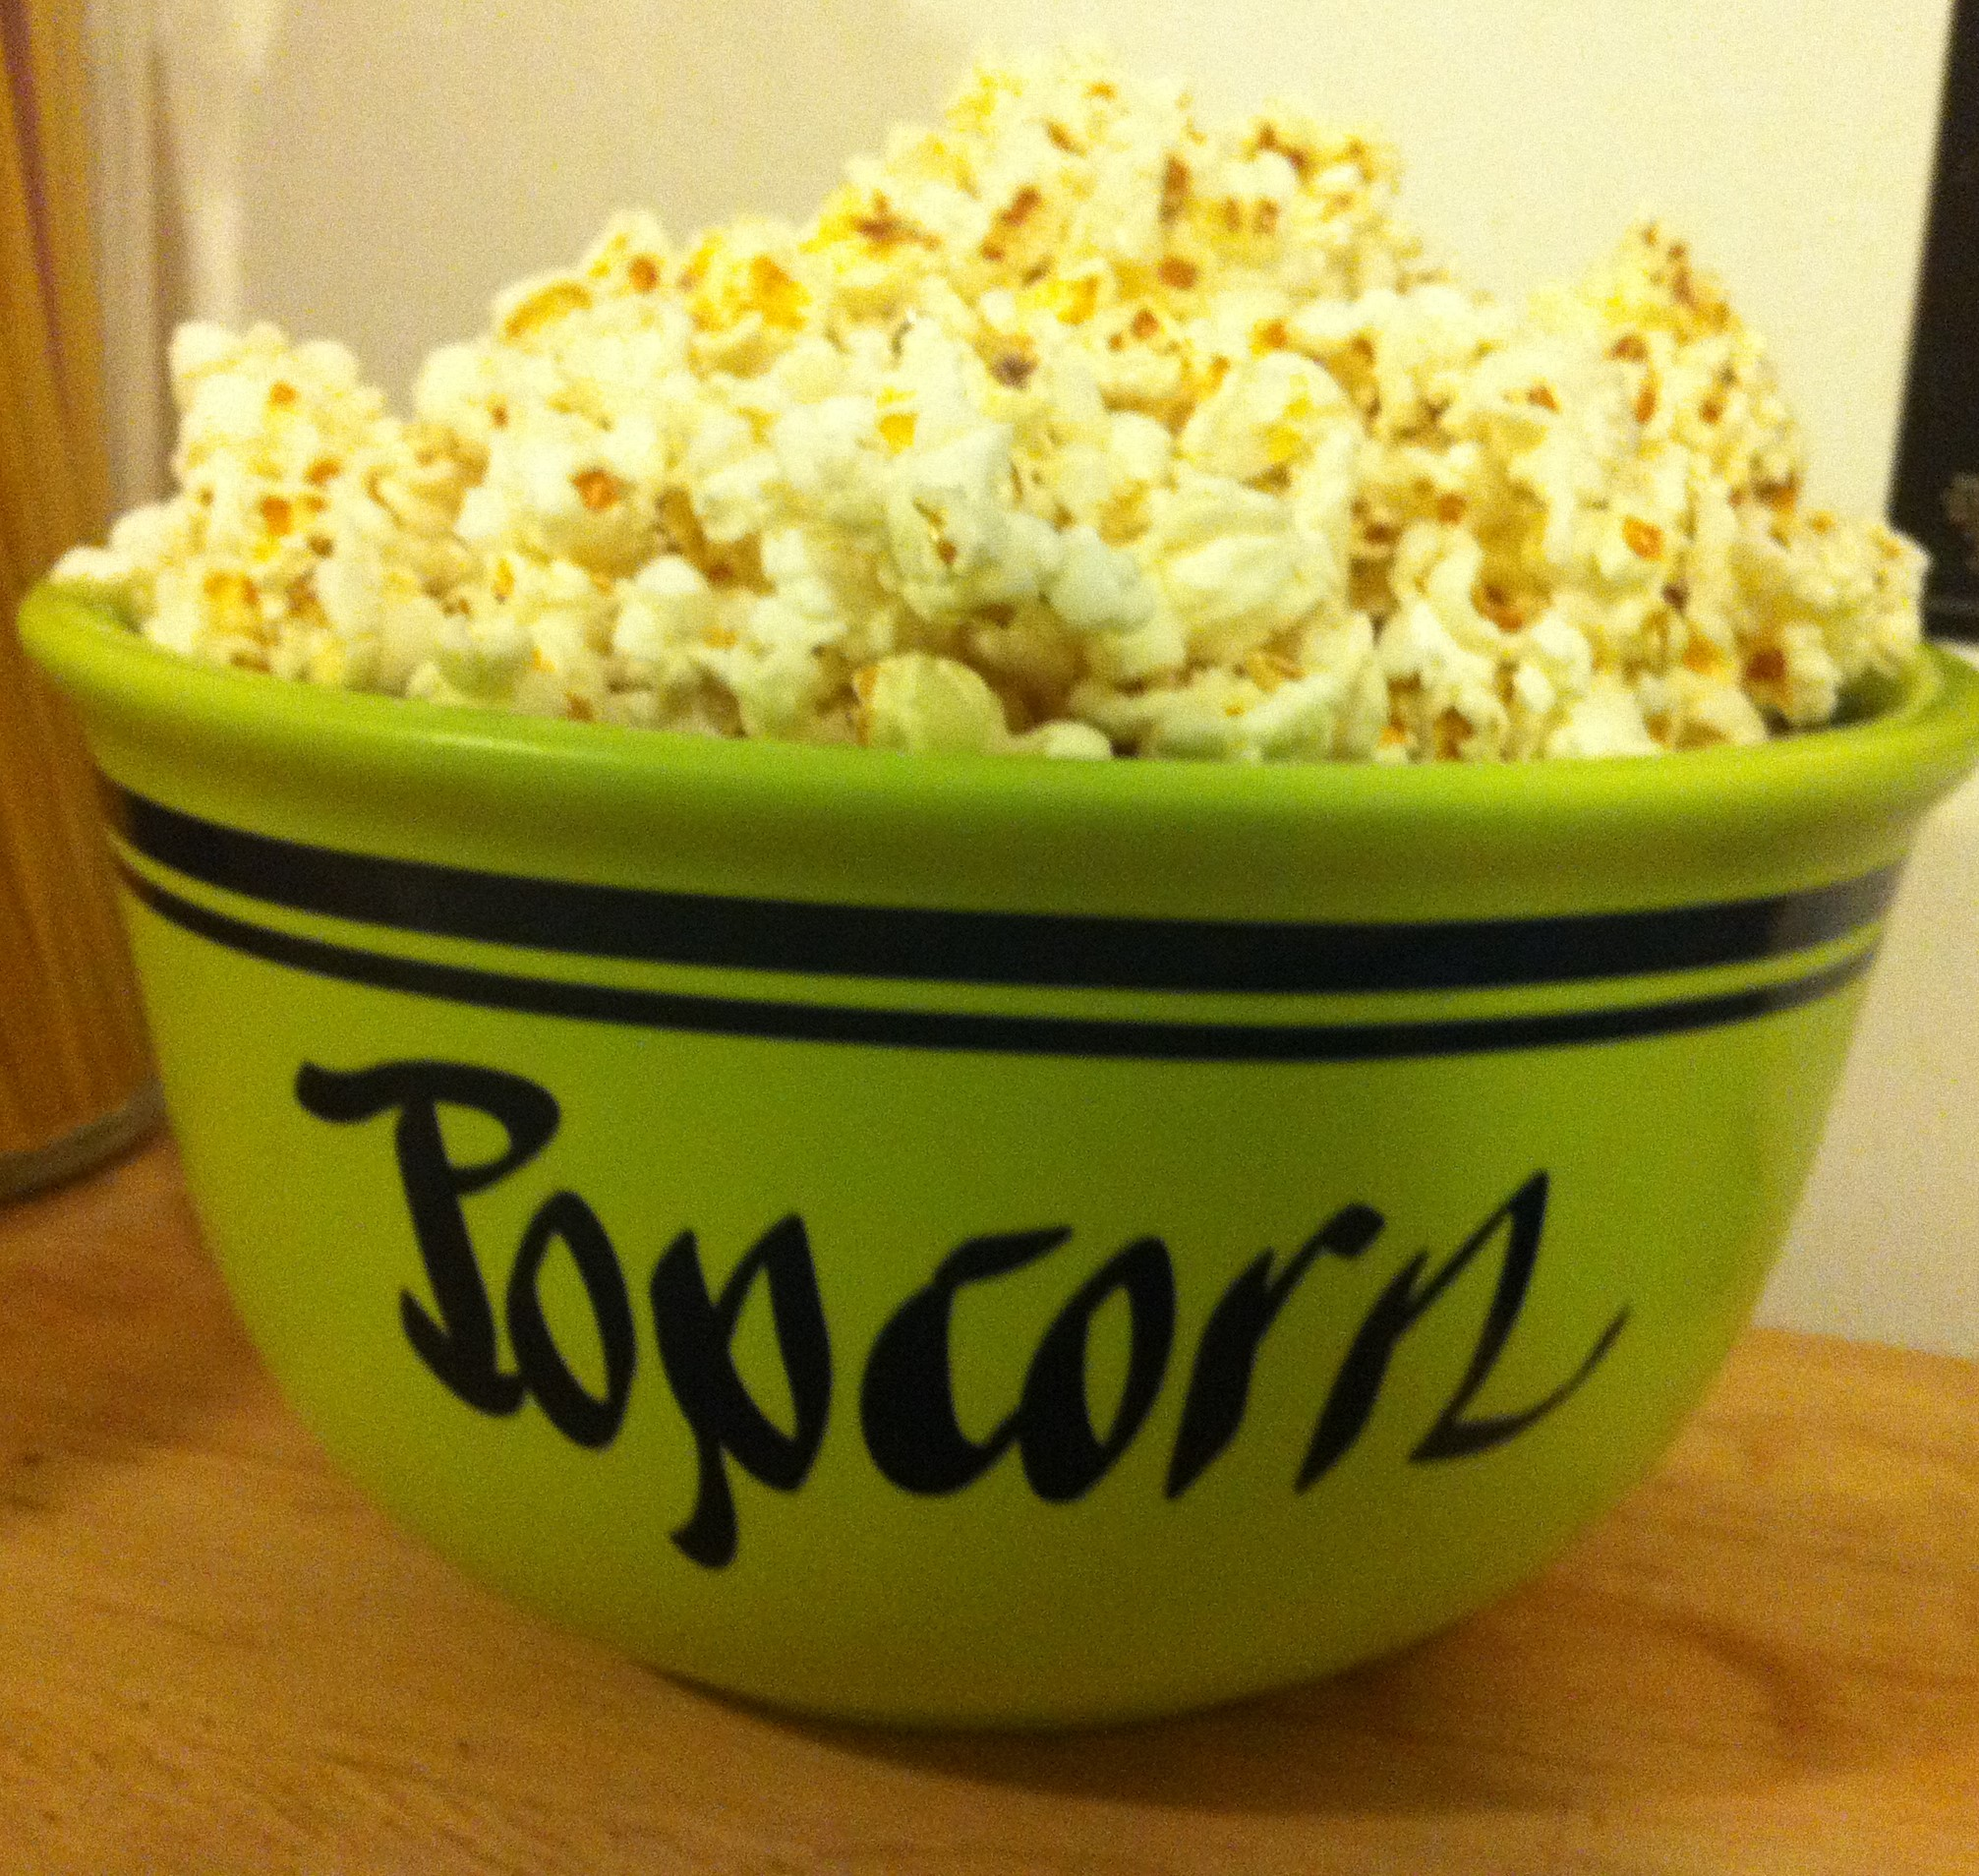 Let's celebrate National Popcorn Day